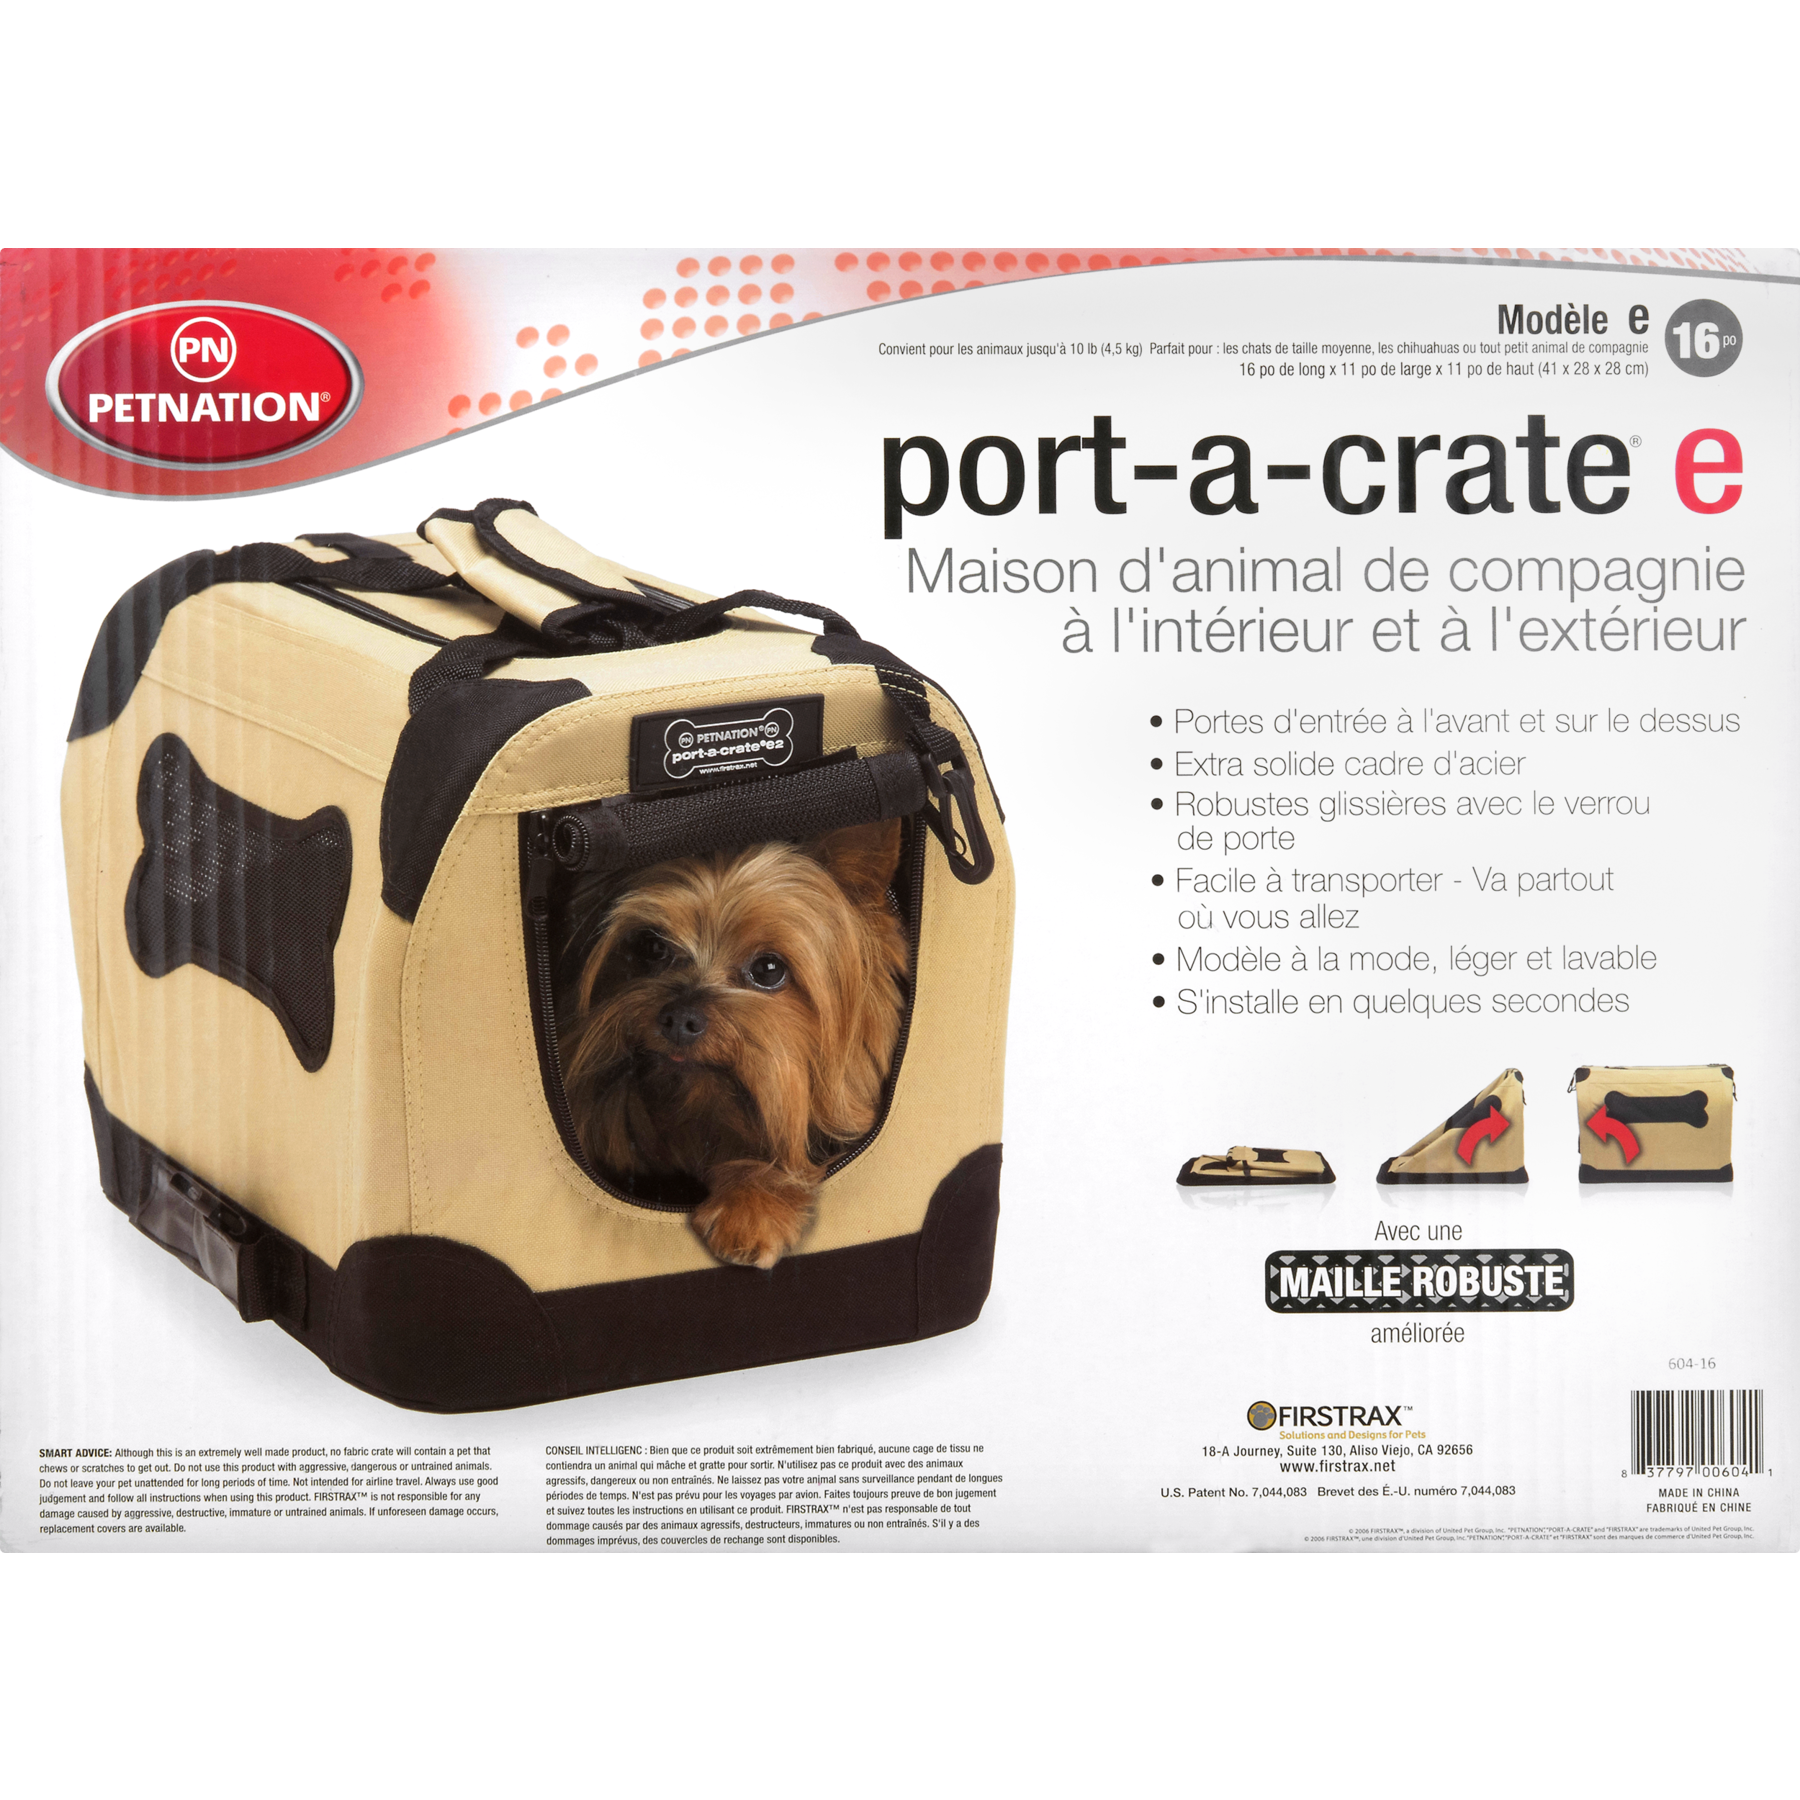 Dog travel crate png. Petnation port a available